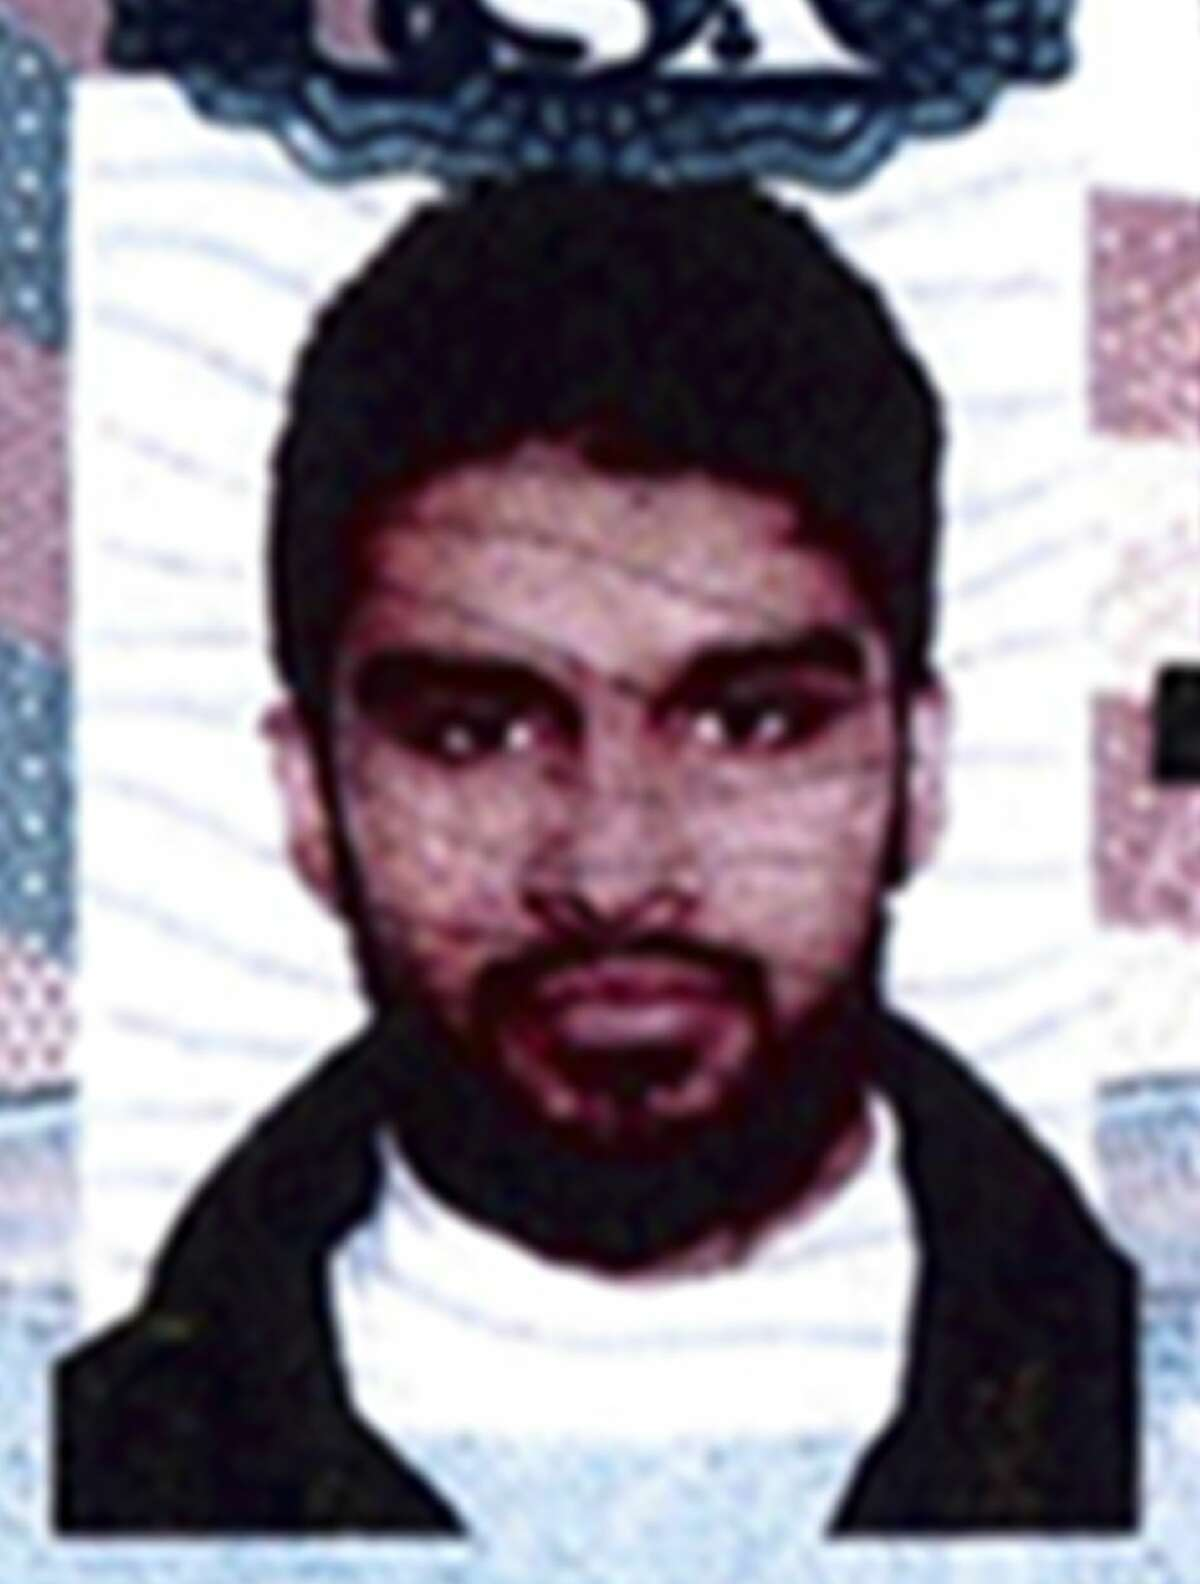 This undated passport photo provided by the U.S. attorney's office and presented as evidence at a detention hearing at federal court in Chicago, Monday, Nov. 3, 2014, shows Mohammed Hamzah Khan.